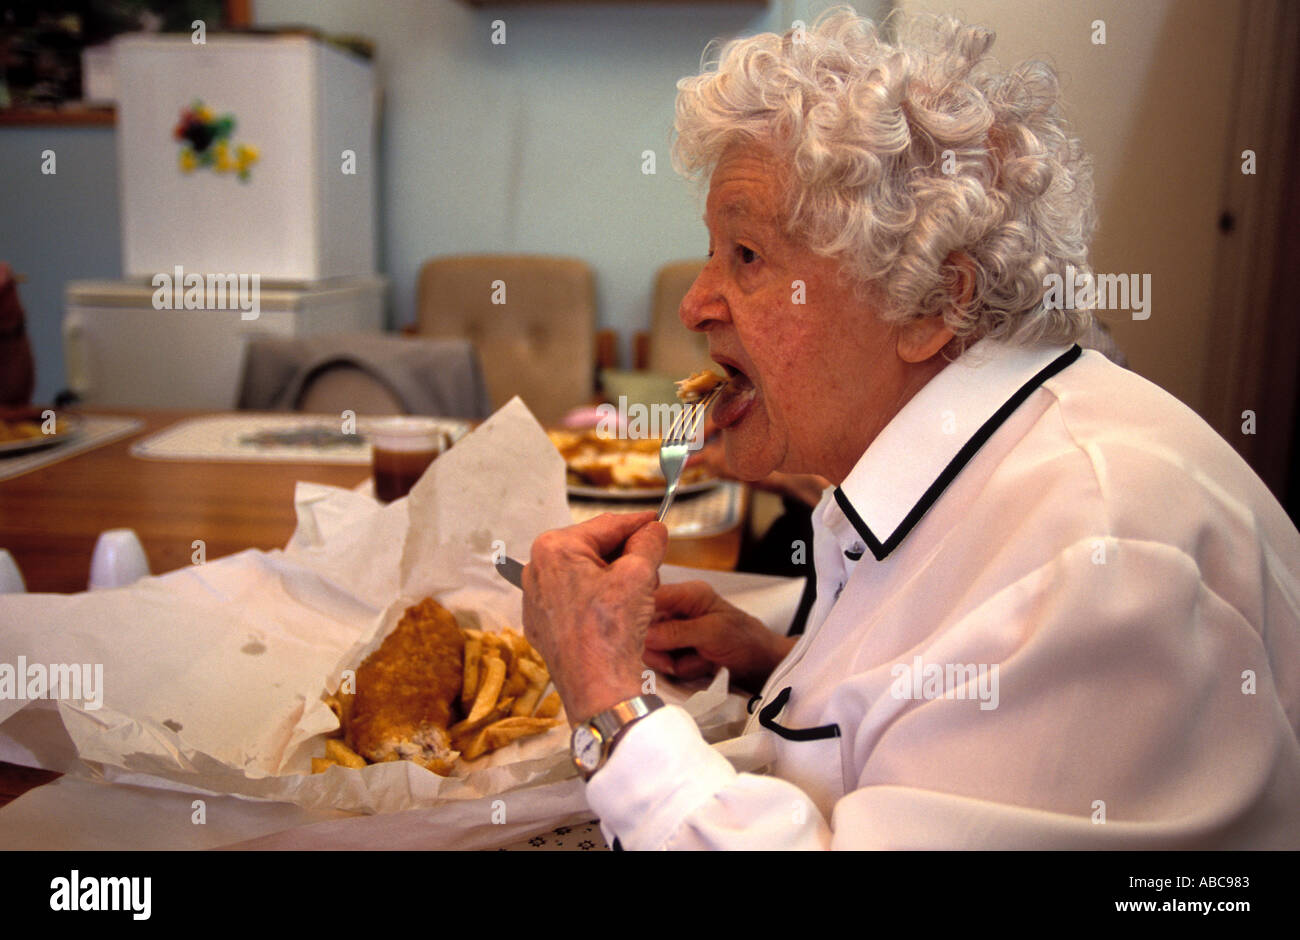 Elderly woman in sheltered housing eating fish and chips, Lambeth, London, UK. - Stock Image